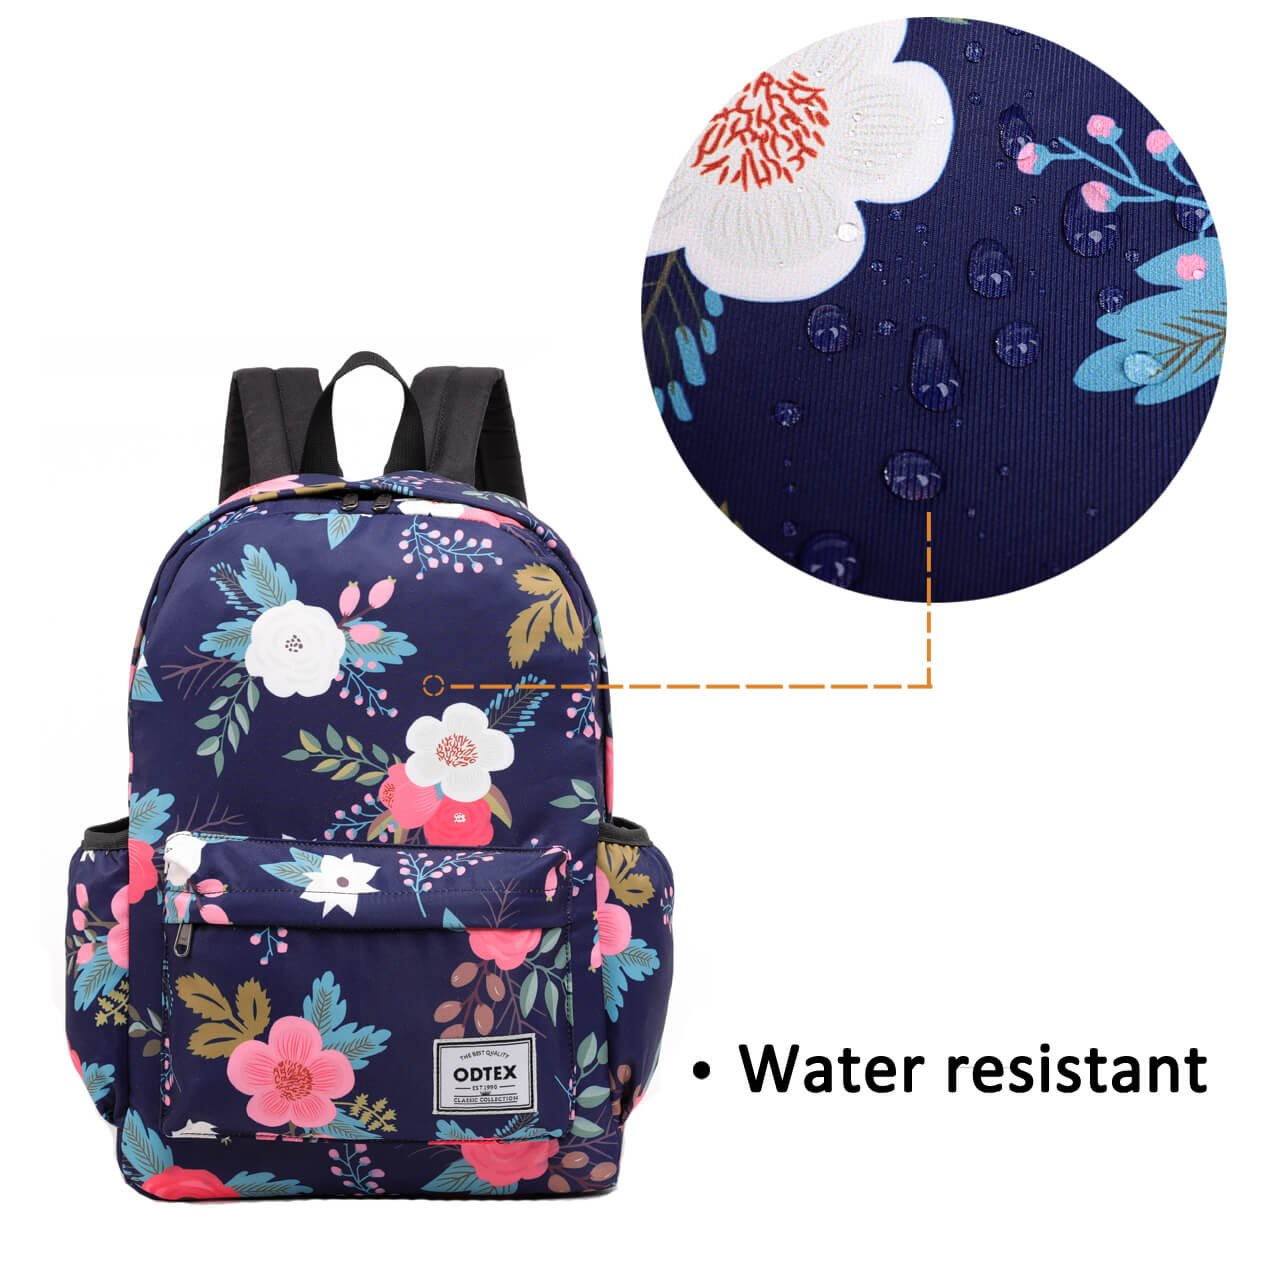 ODTEX Backpack Water Resistant School Bookbag for College Travel Laptop Backpack Fits for 15 inch Notebook and Tablet by ODTEX (Image #1)